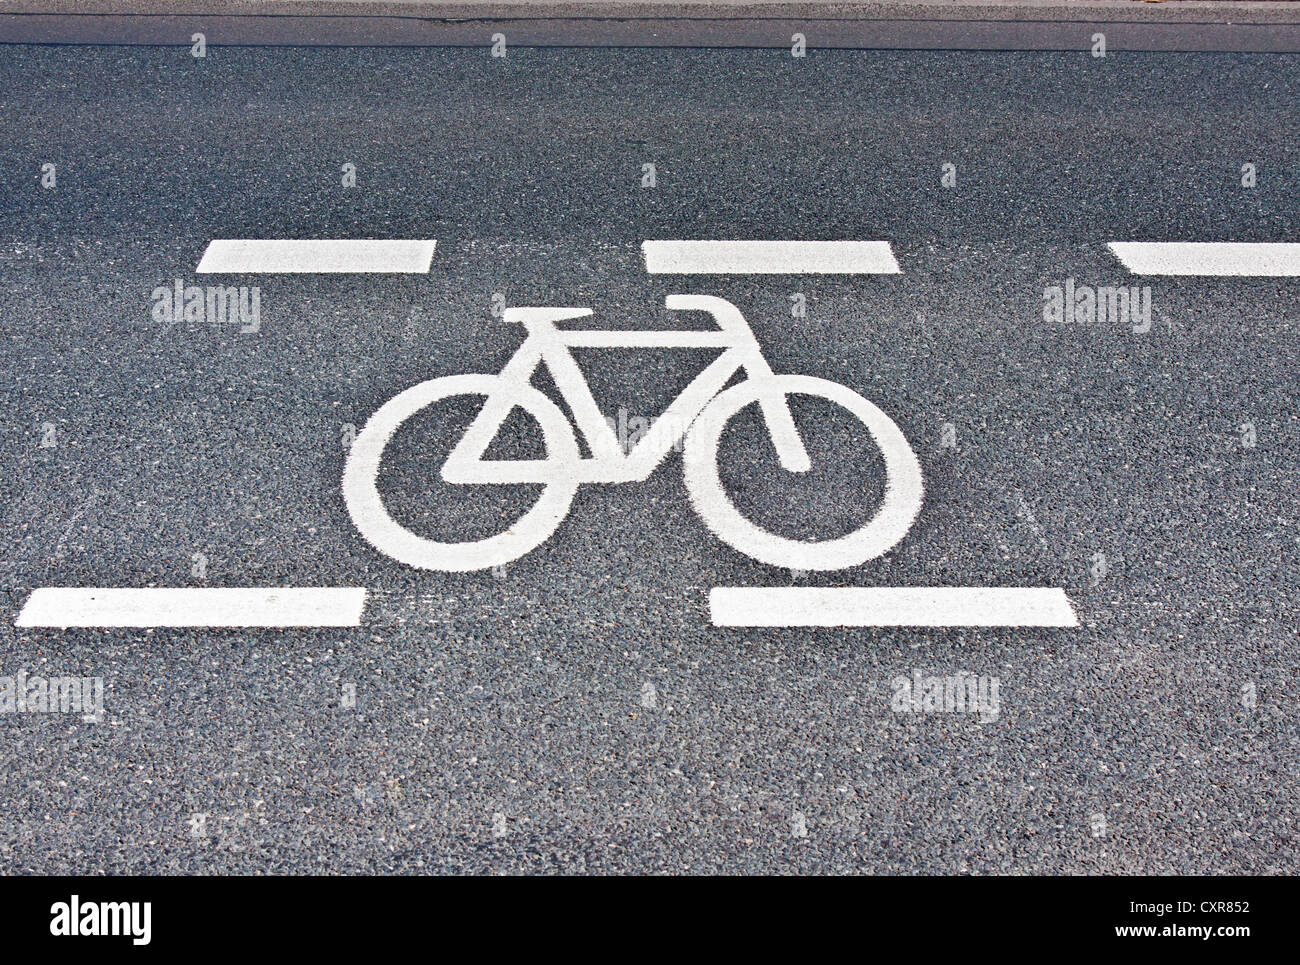 Pictogram, cycle path - Stock Image